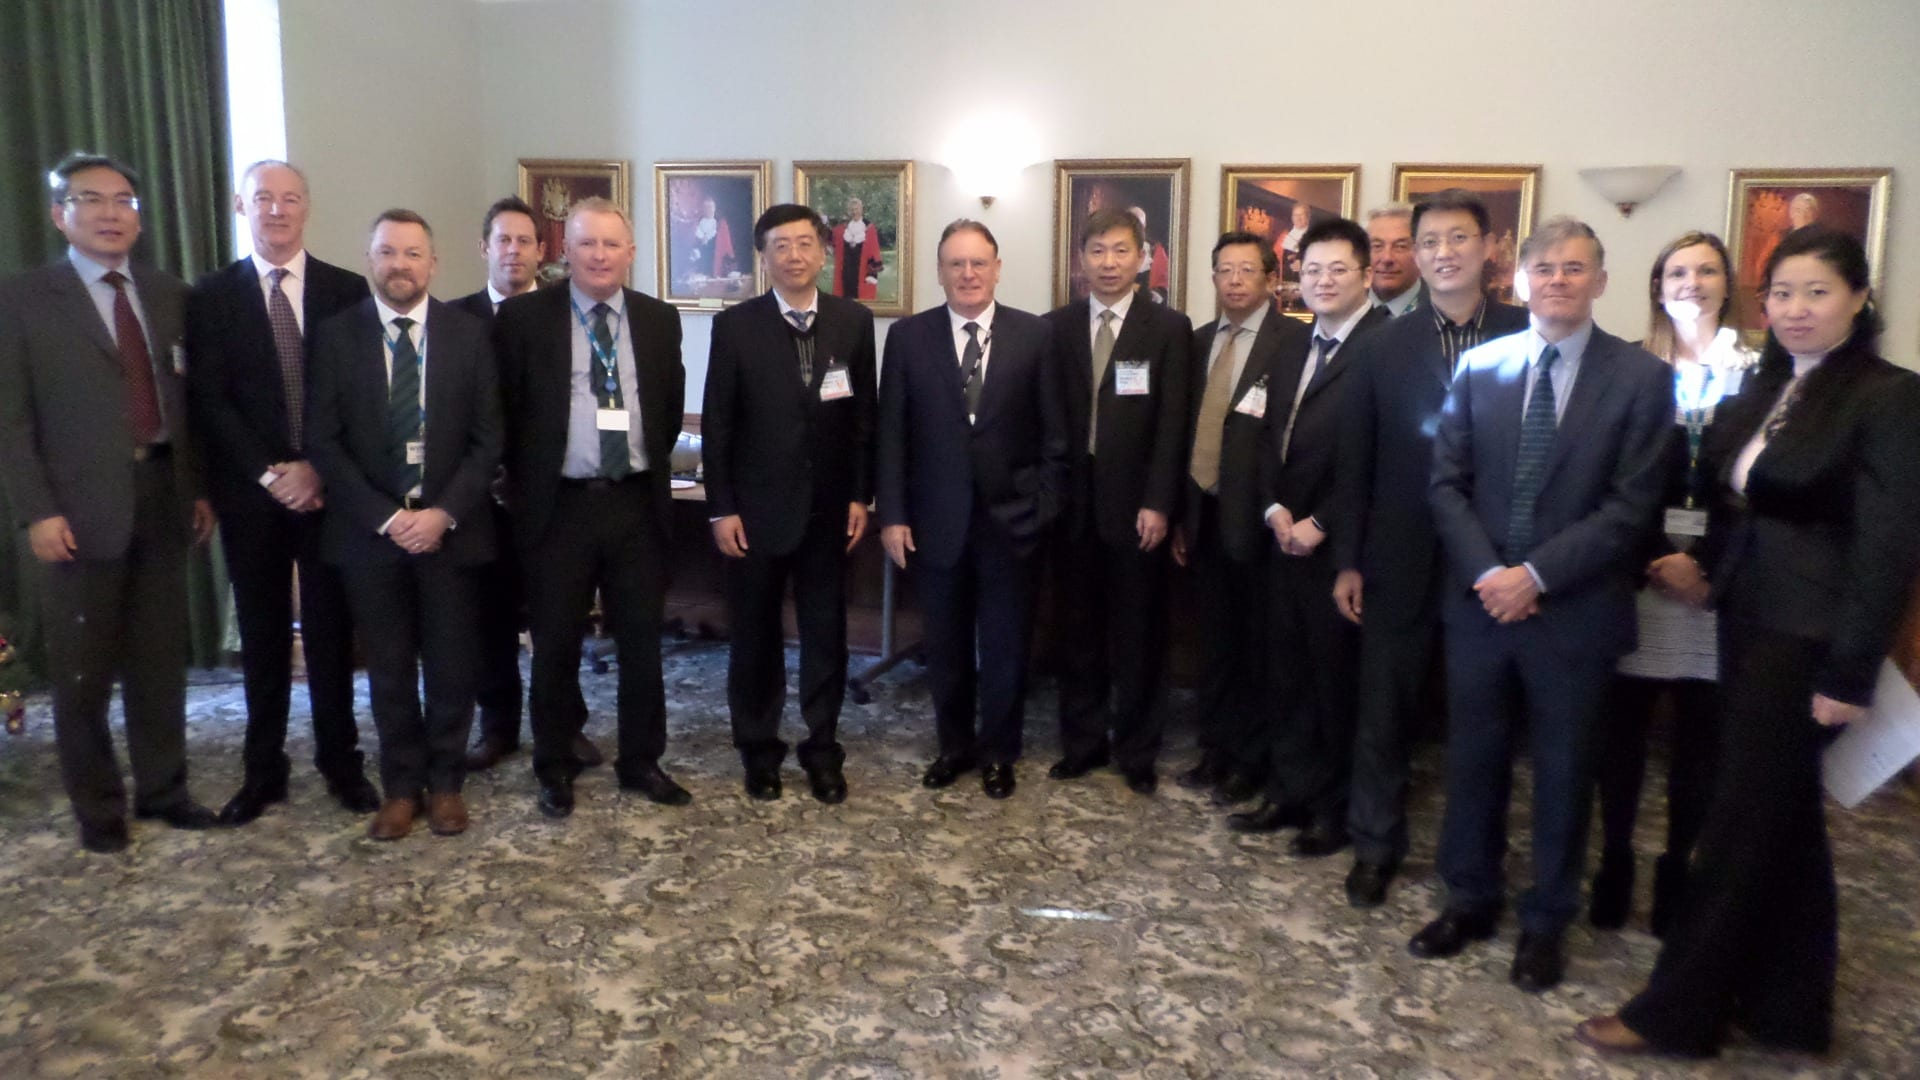 Chinese delegation visit Hillhouse and Wyre